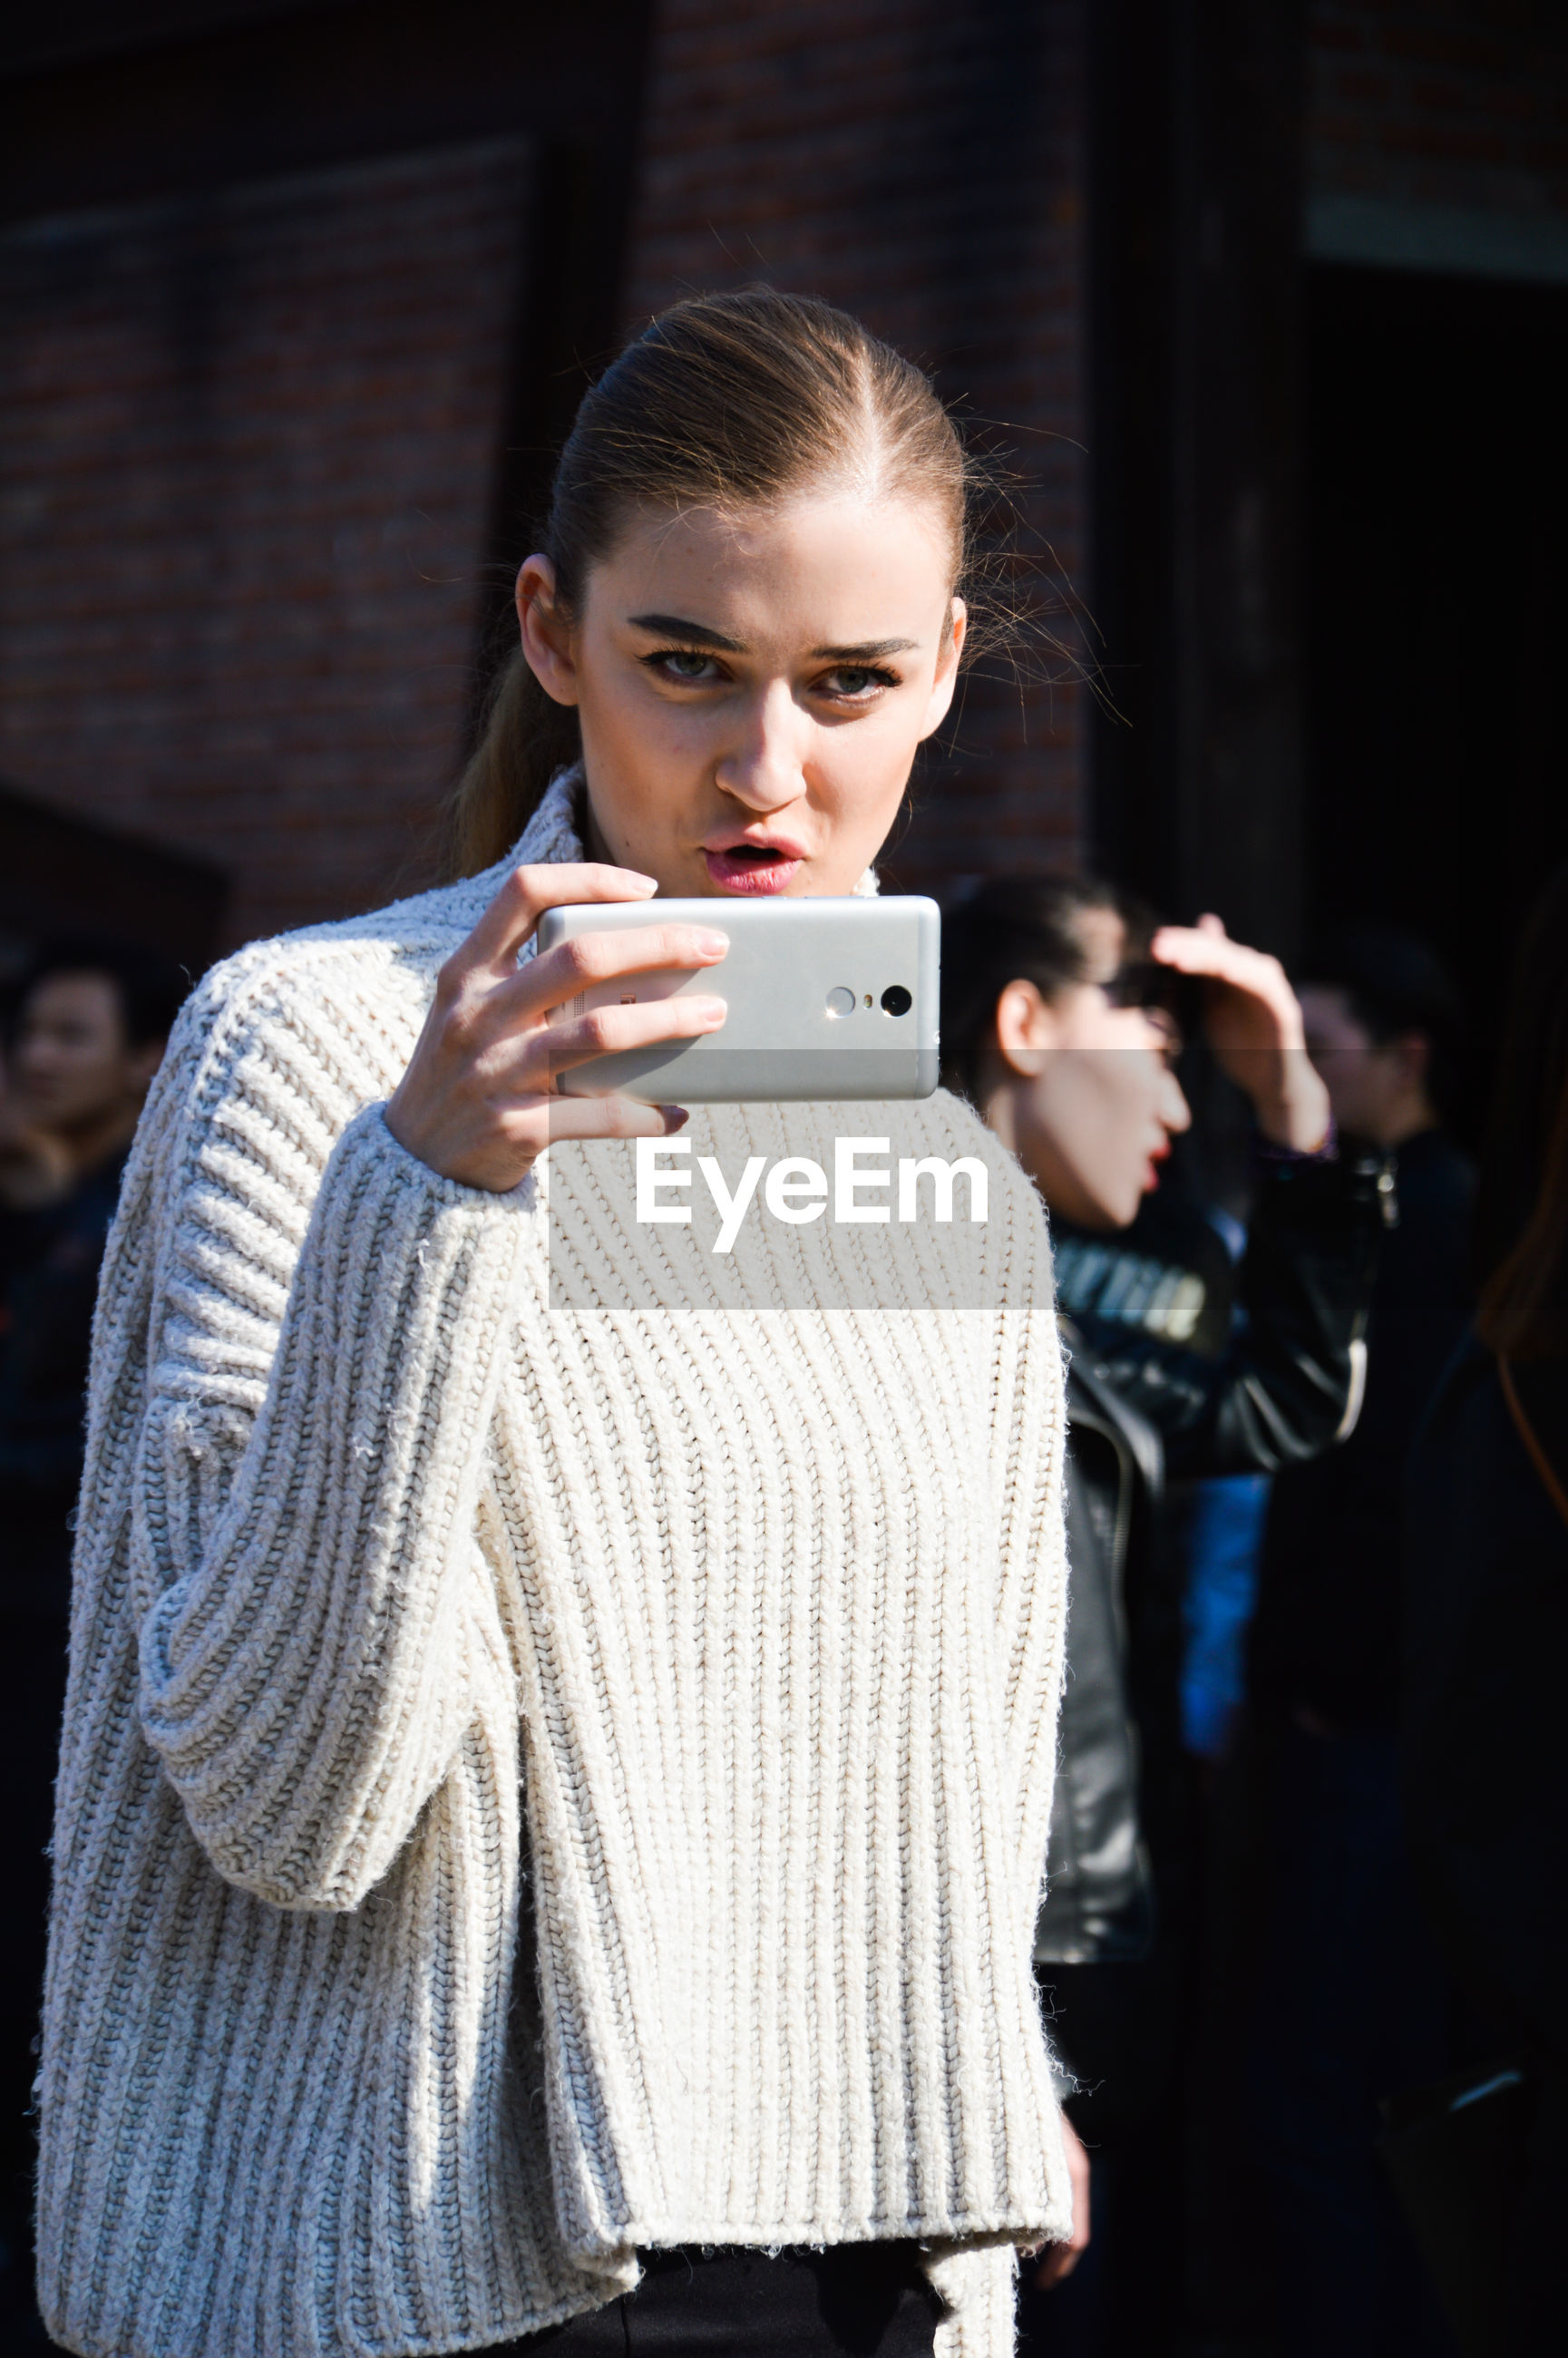 wireless technology, portable information device, smart phone, technology, communication, young adult, mobile phone, teenager, portrait, youth culture, front view, lifestyles, looking down, real people, people, women, one person, internet, adult, young women, outdoors, night